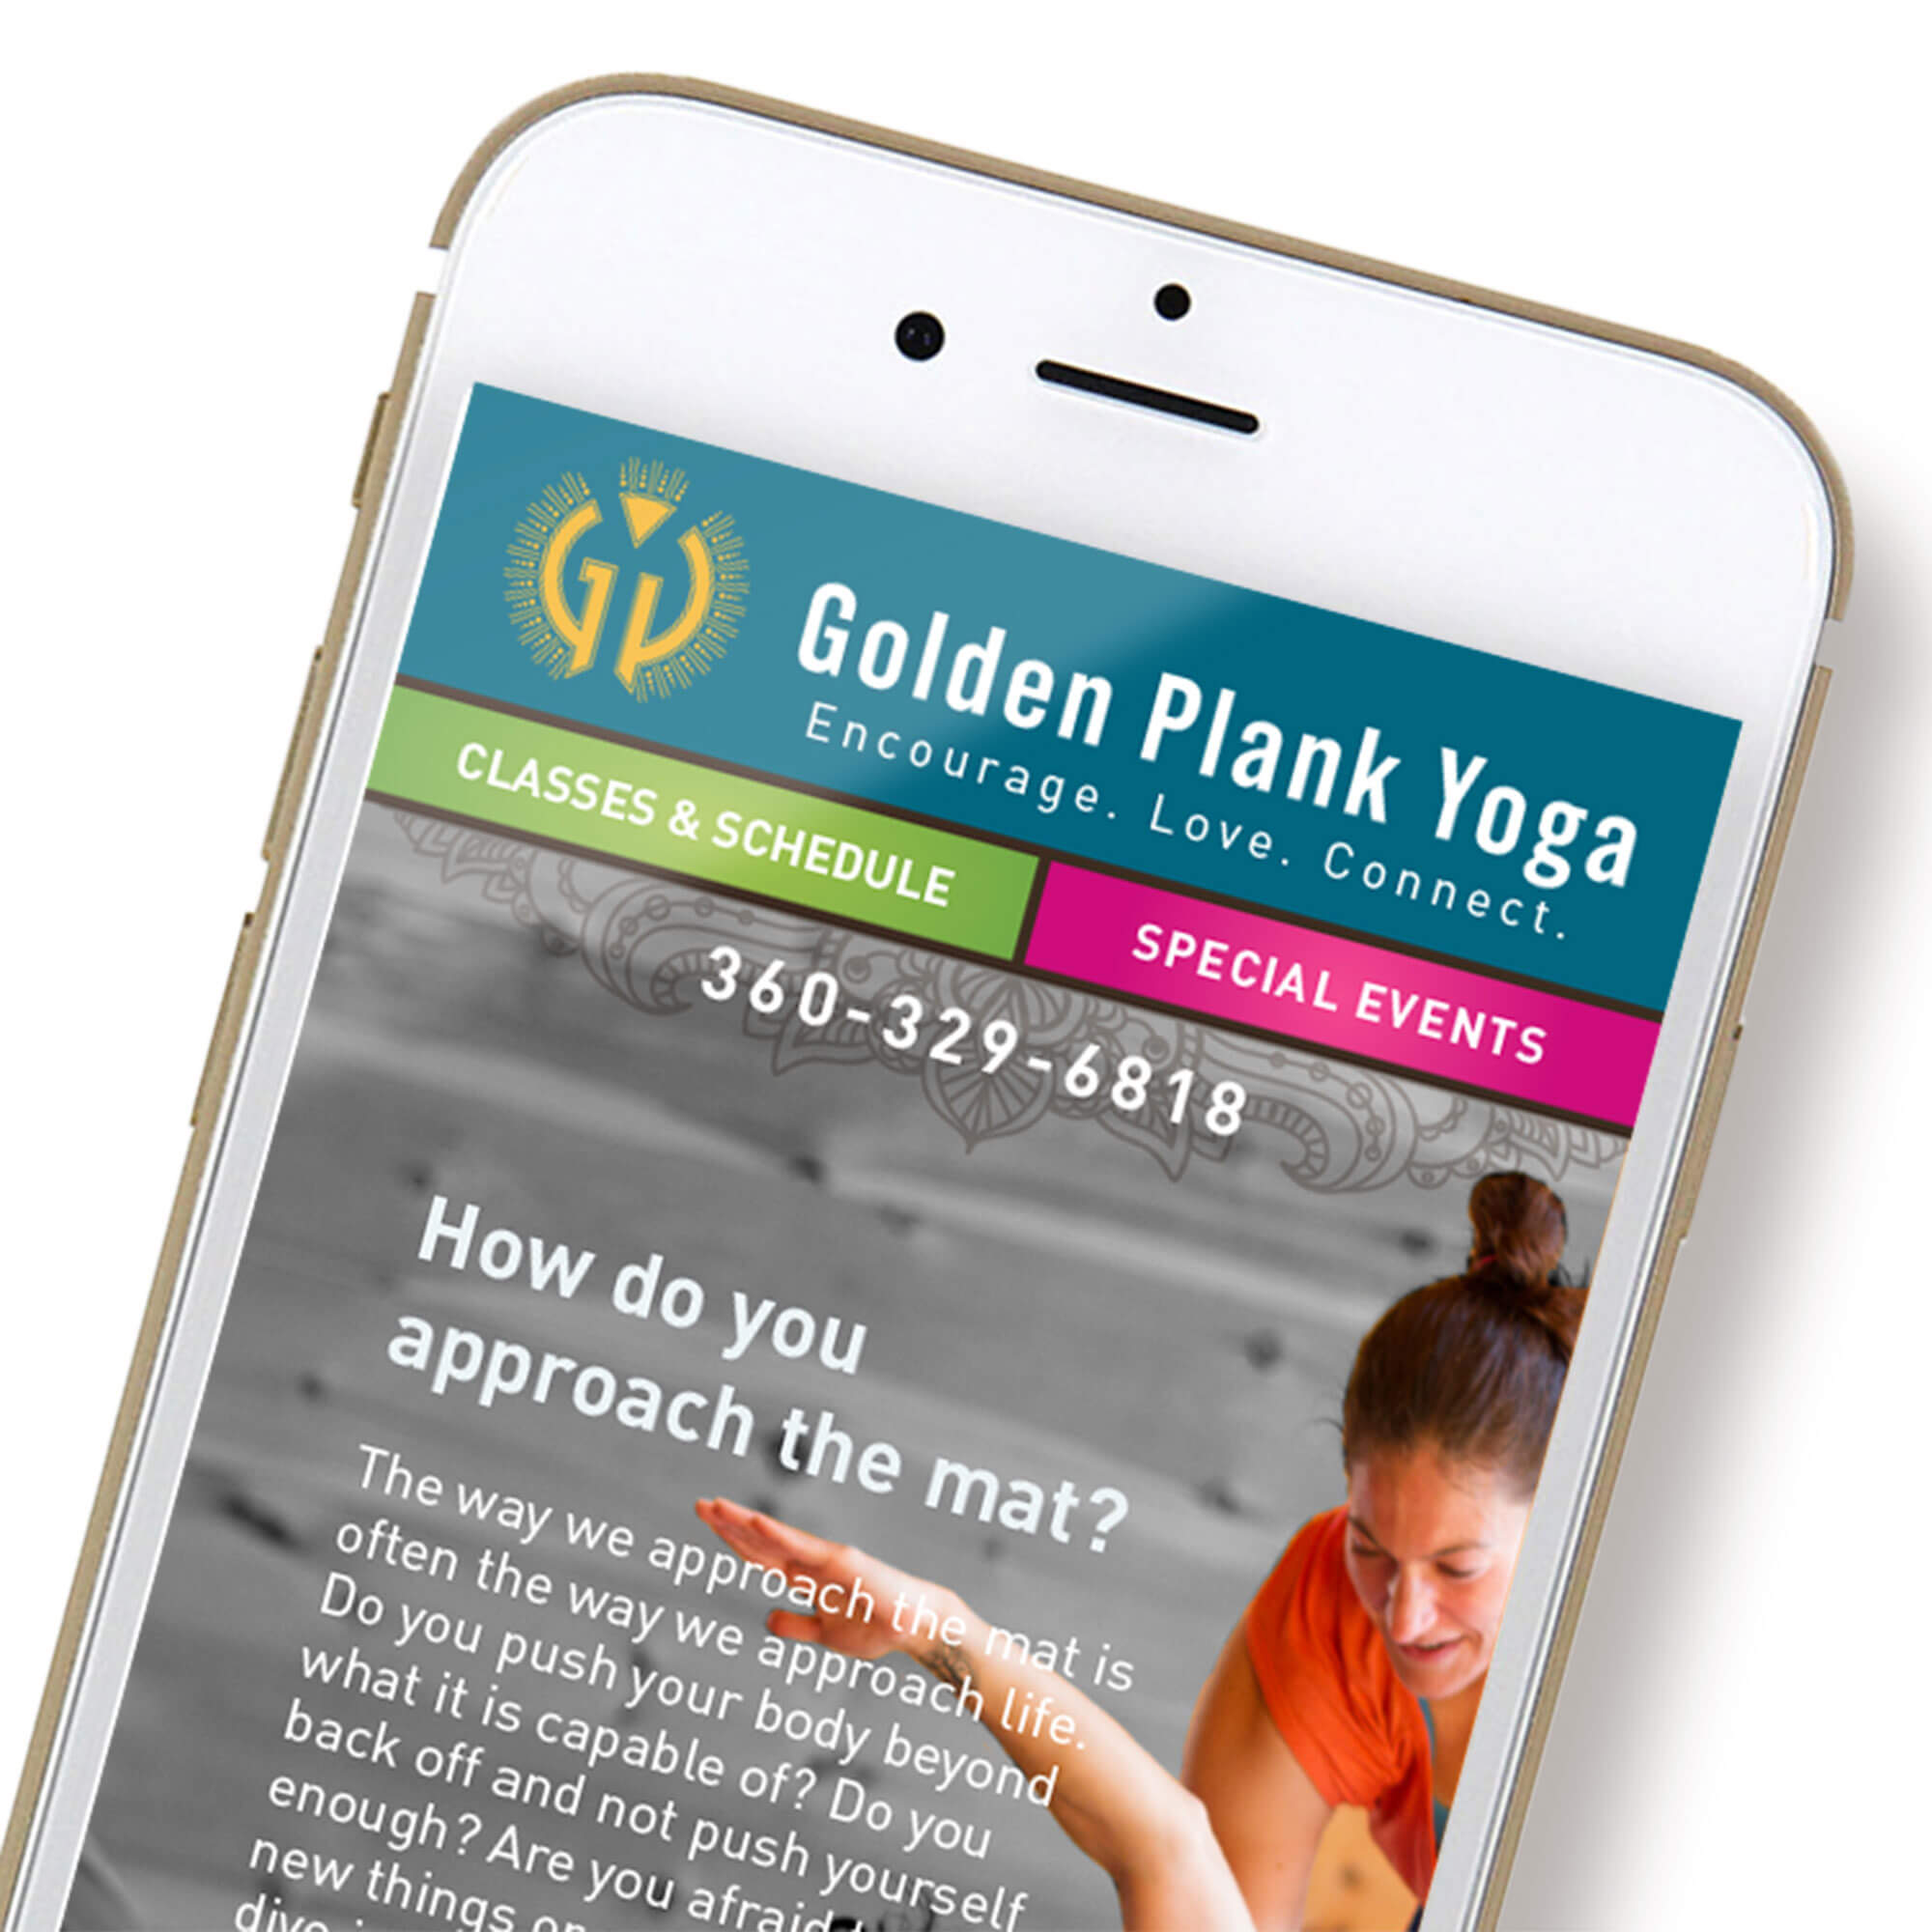 See my work for Golden Plank Yoga